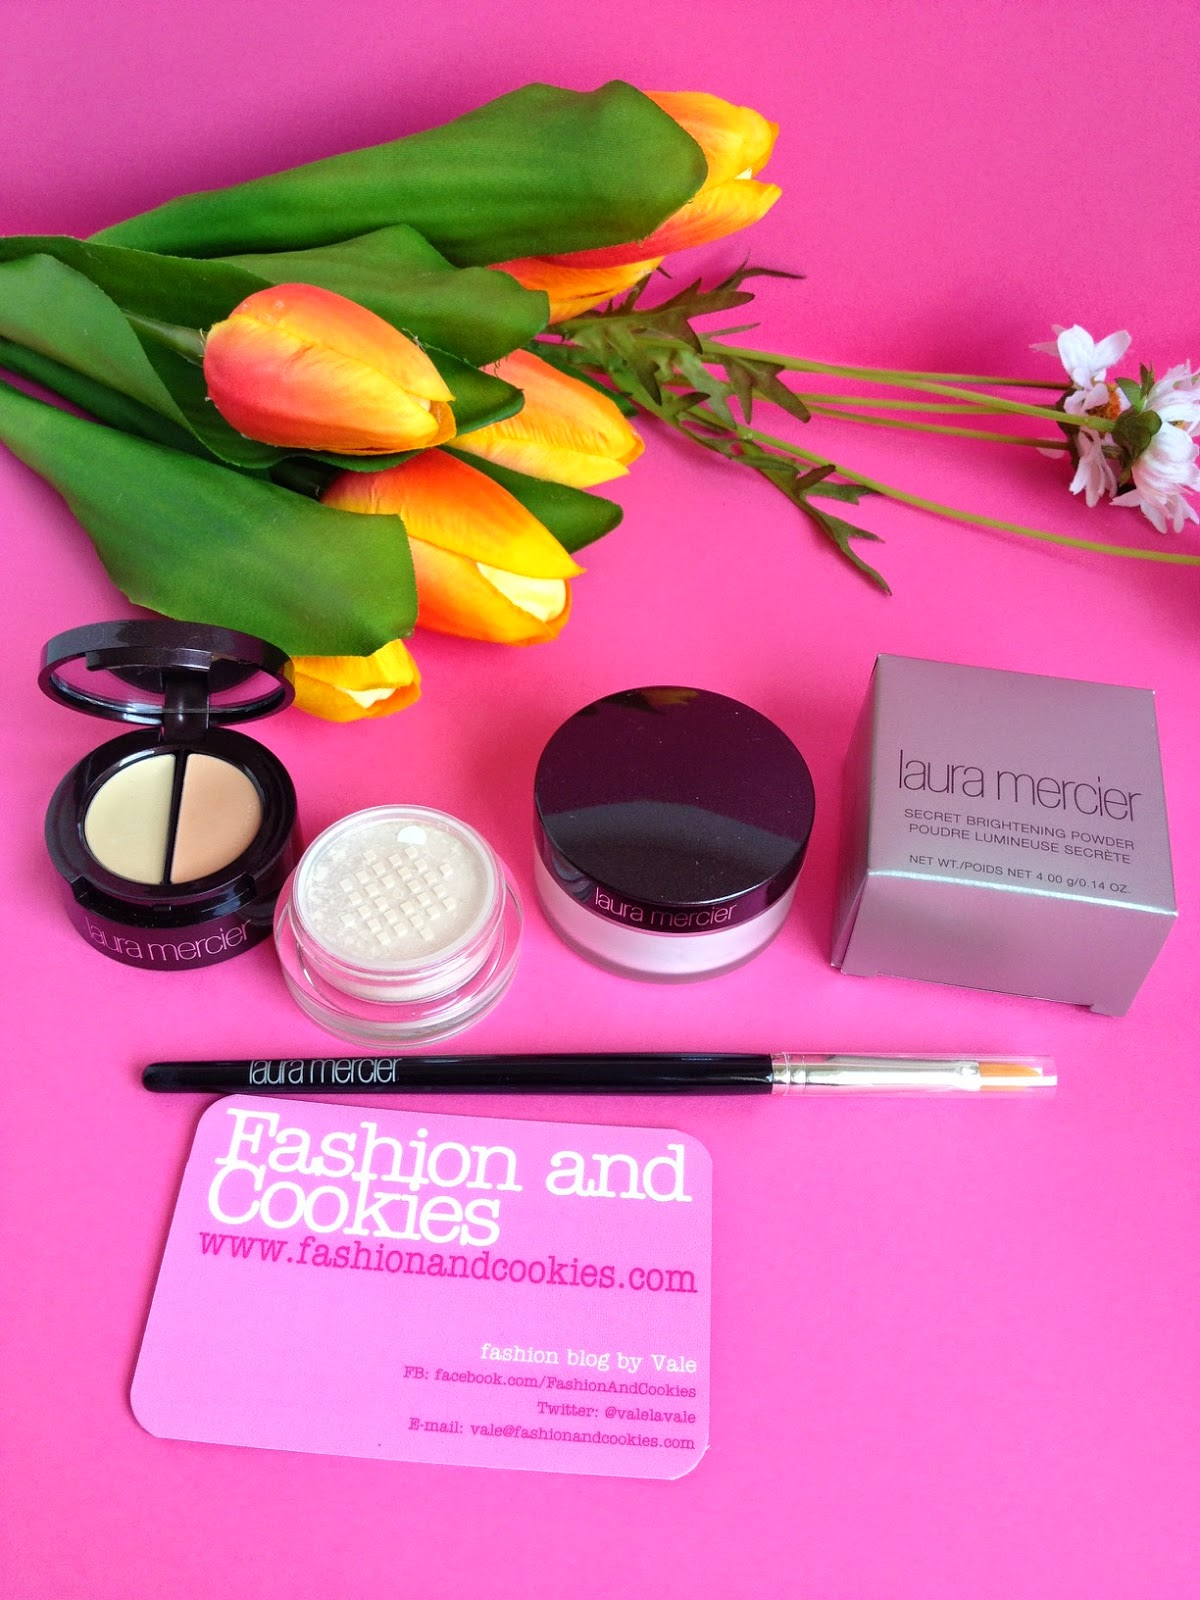 Laura Mercier makeup on Stefano Saccani Parma, Laura Mercier haul,  Laura Mercier must haves, Laura Mercier concealers, Fashion and Cookies, fashion blog